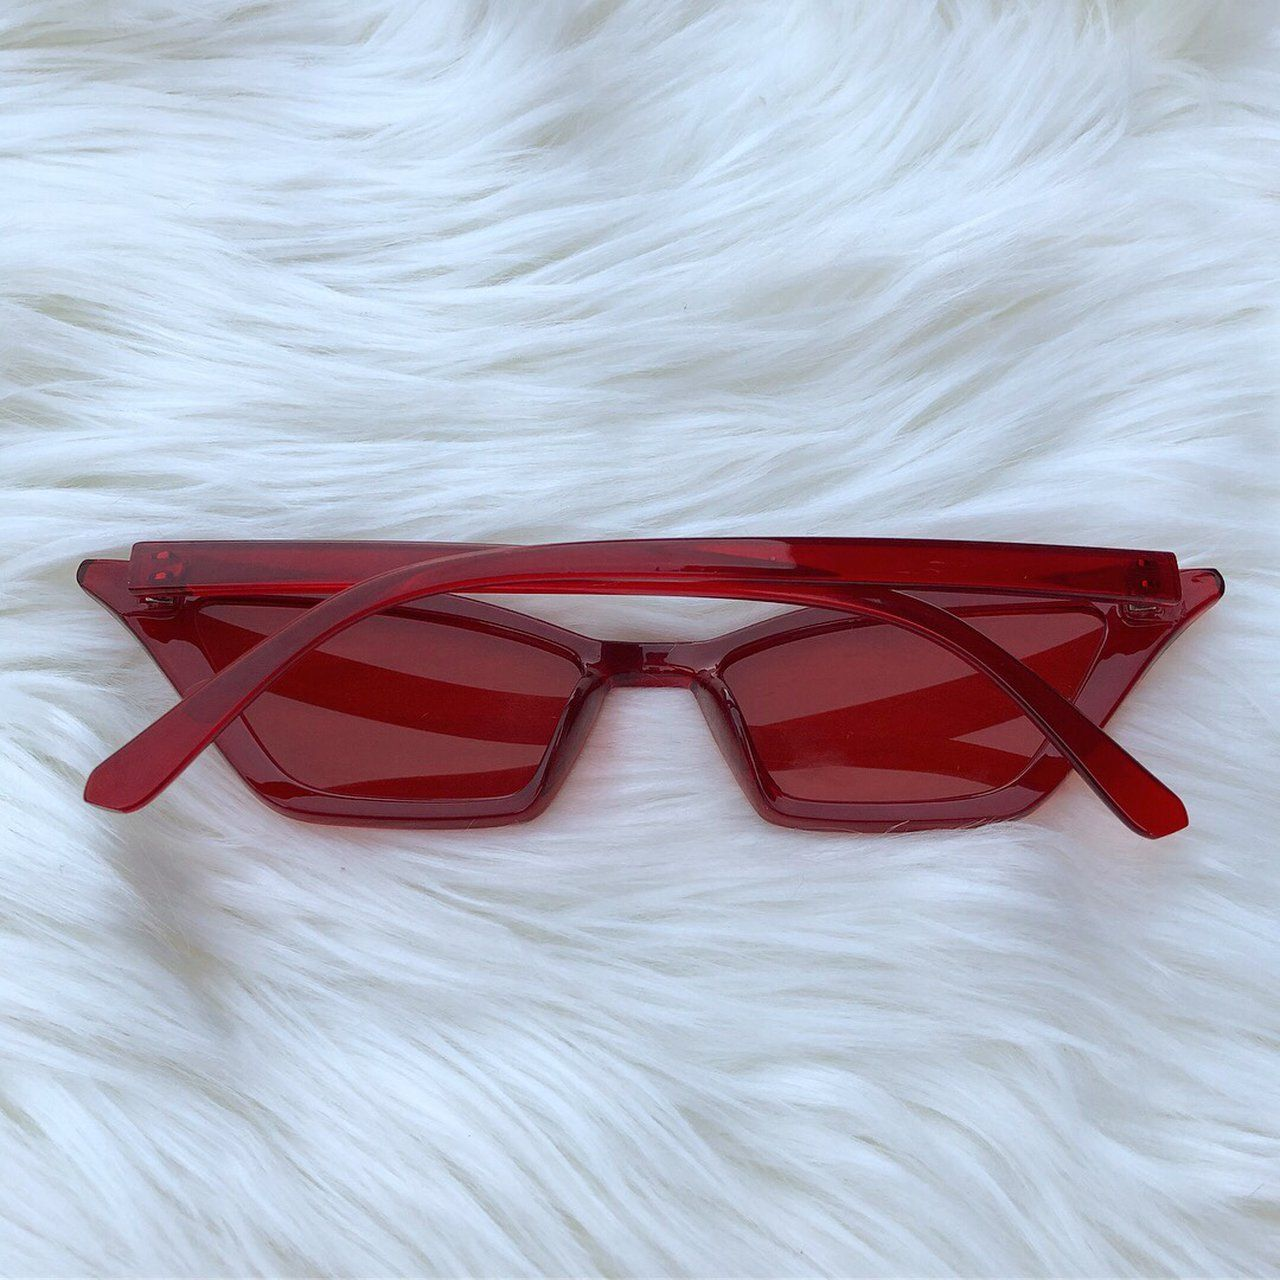 26855a9350408 Gorgeous lucite clear transparent sunnies Brand new never - Depop